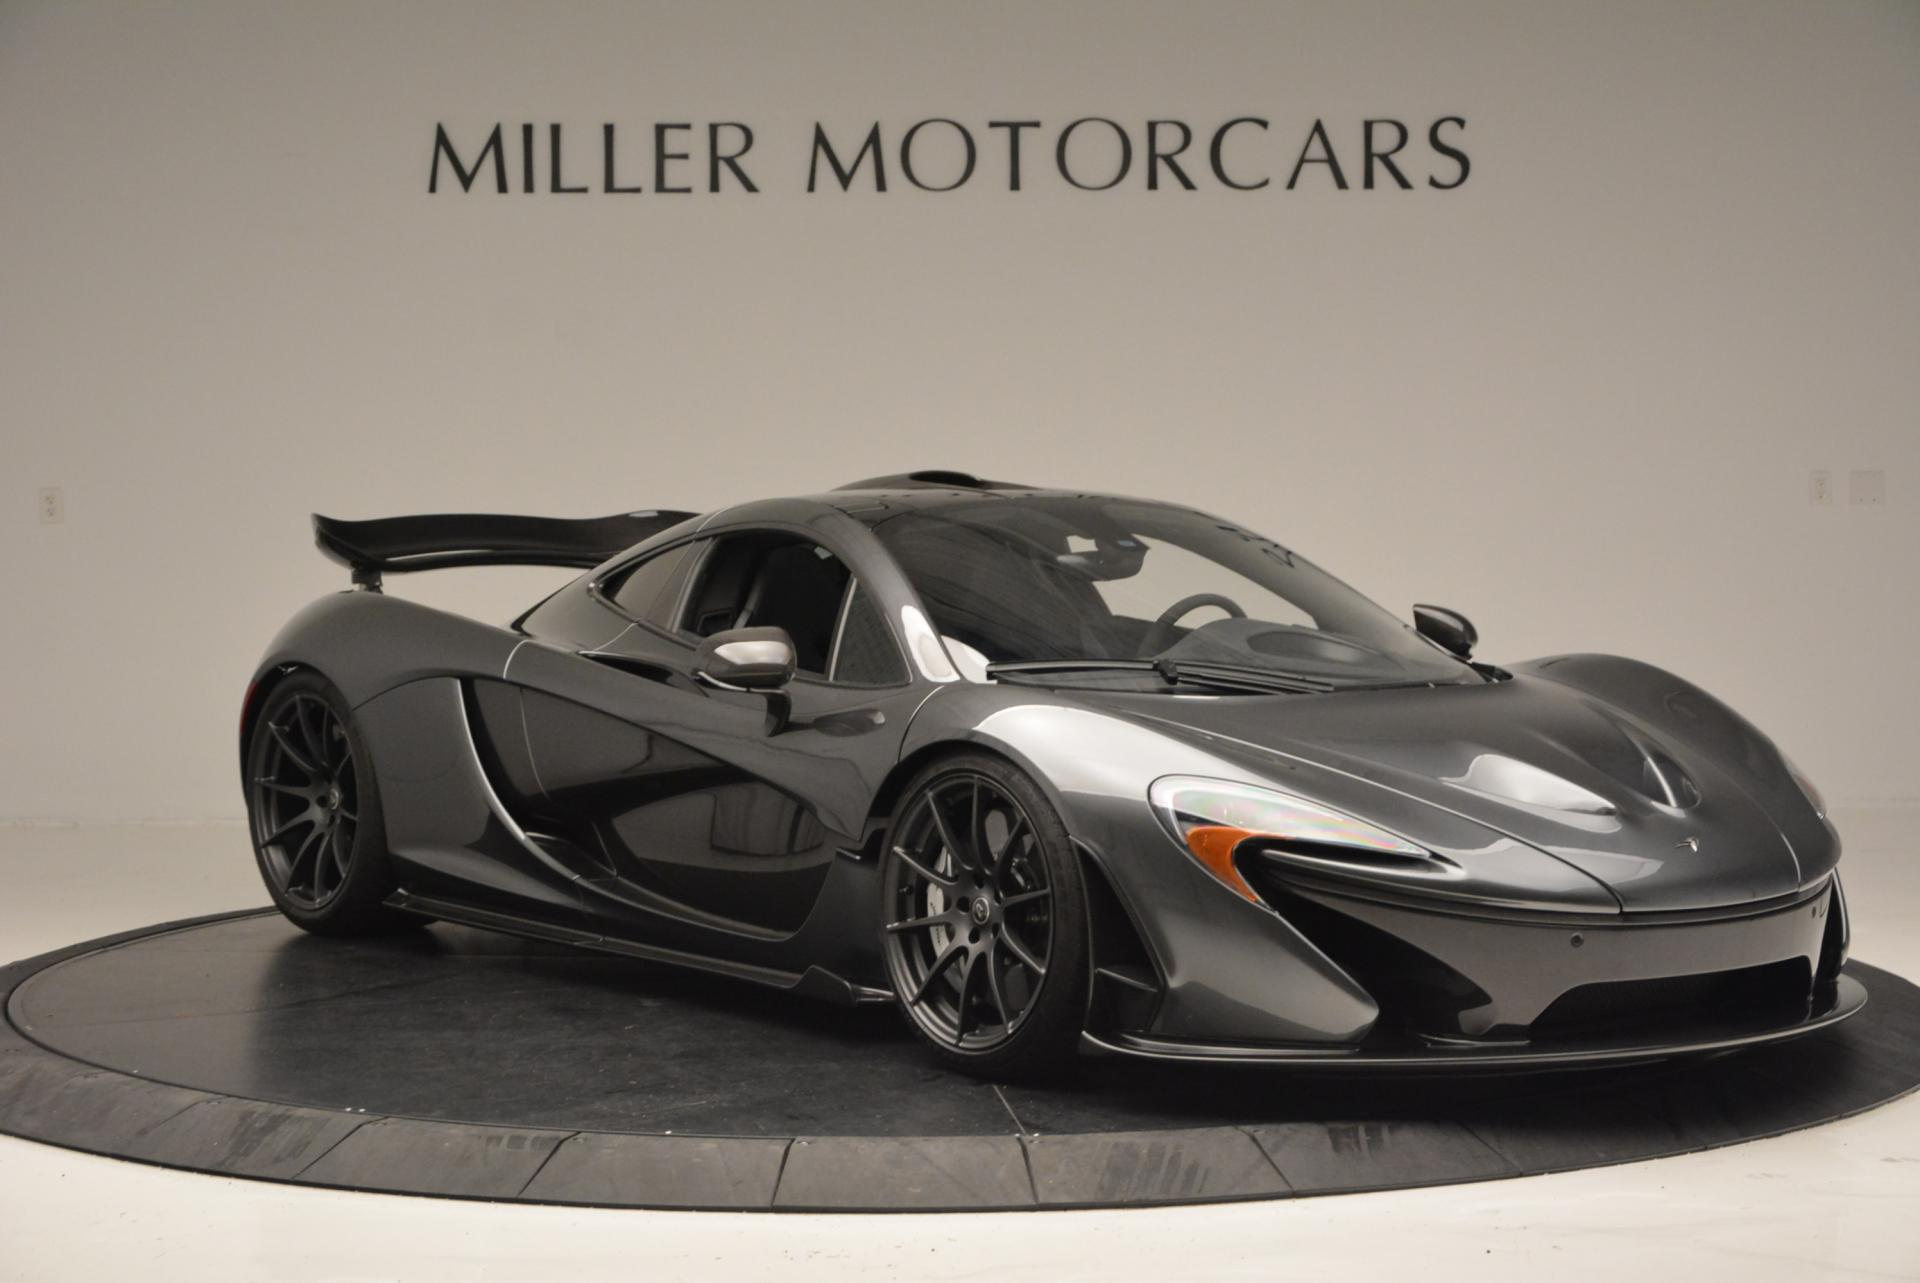 Used 2014 McLaren P1 Coupe For Sale In Greenwich, CT. Alfa Romeo of Greenwich, 3100 513_p14